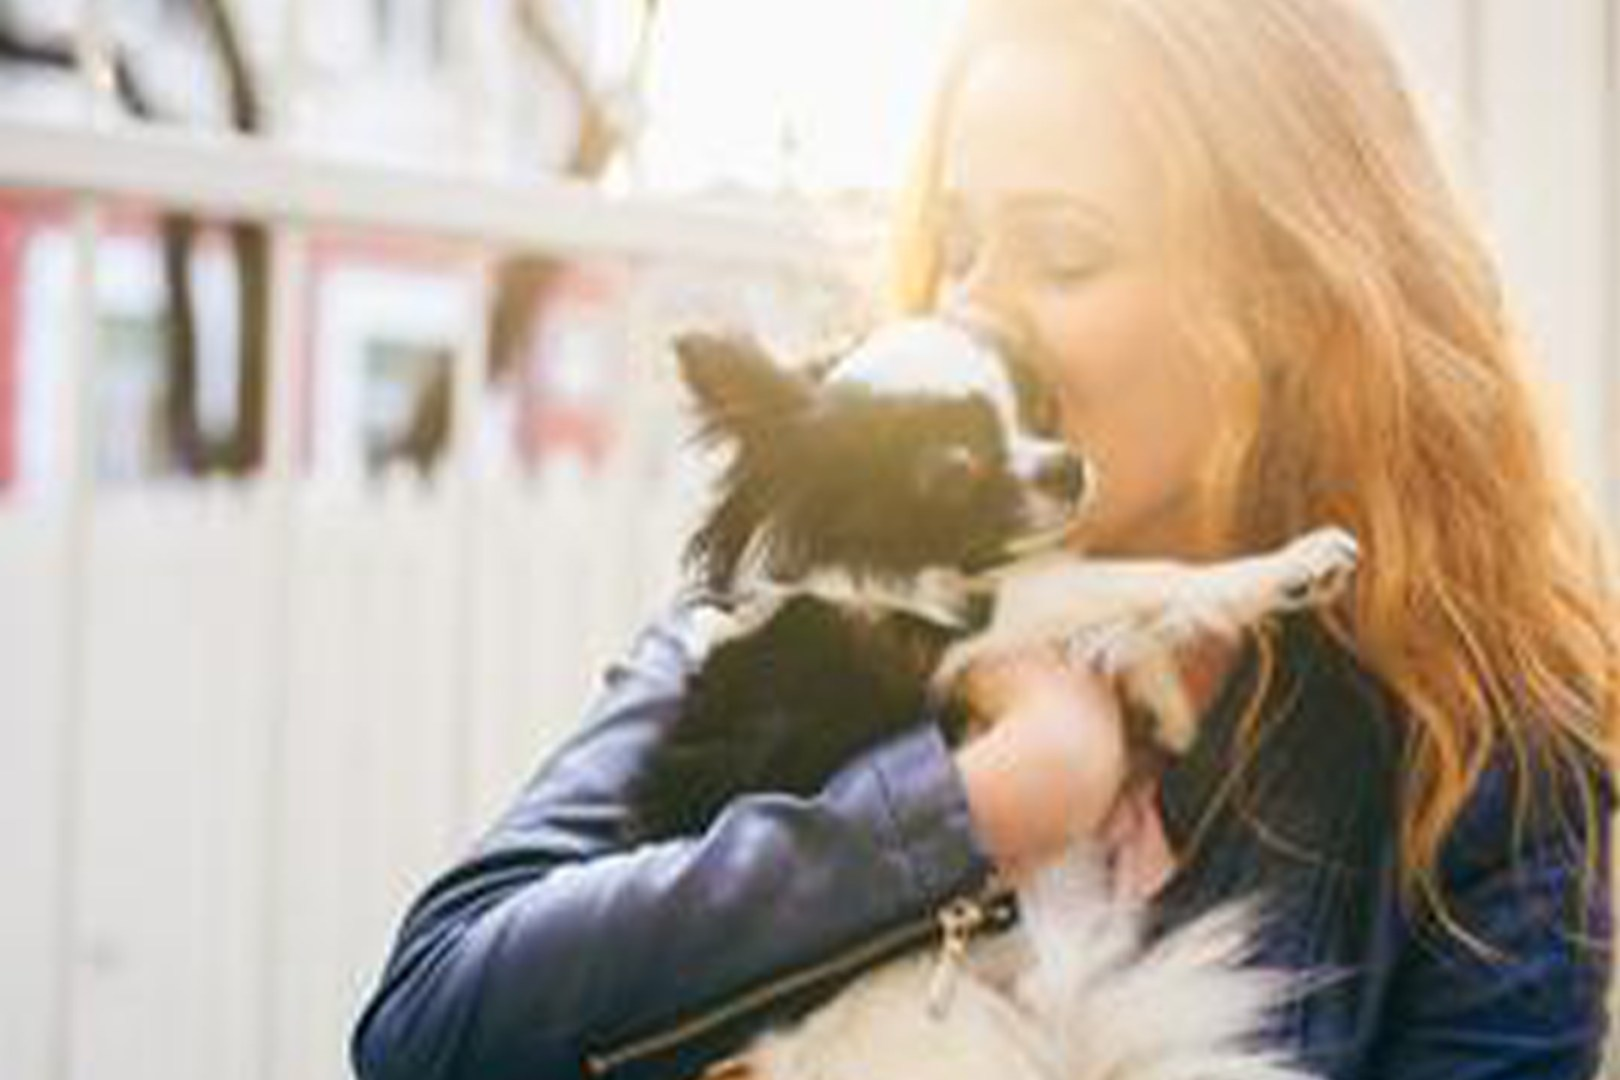 A young lady wearing a blue jacket holding and kissing a small black and white dog.